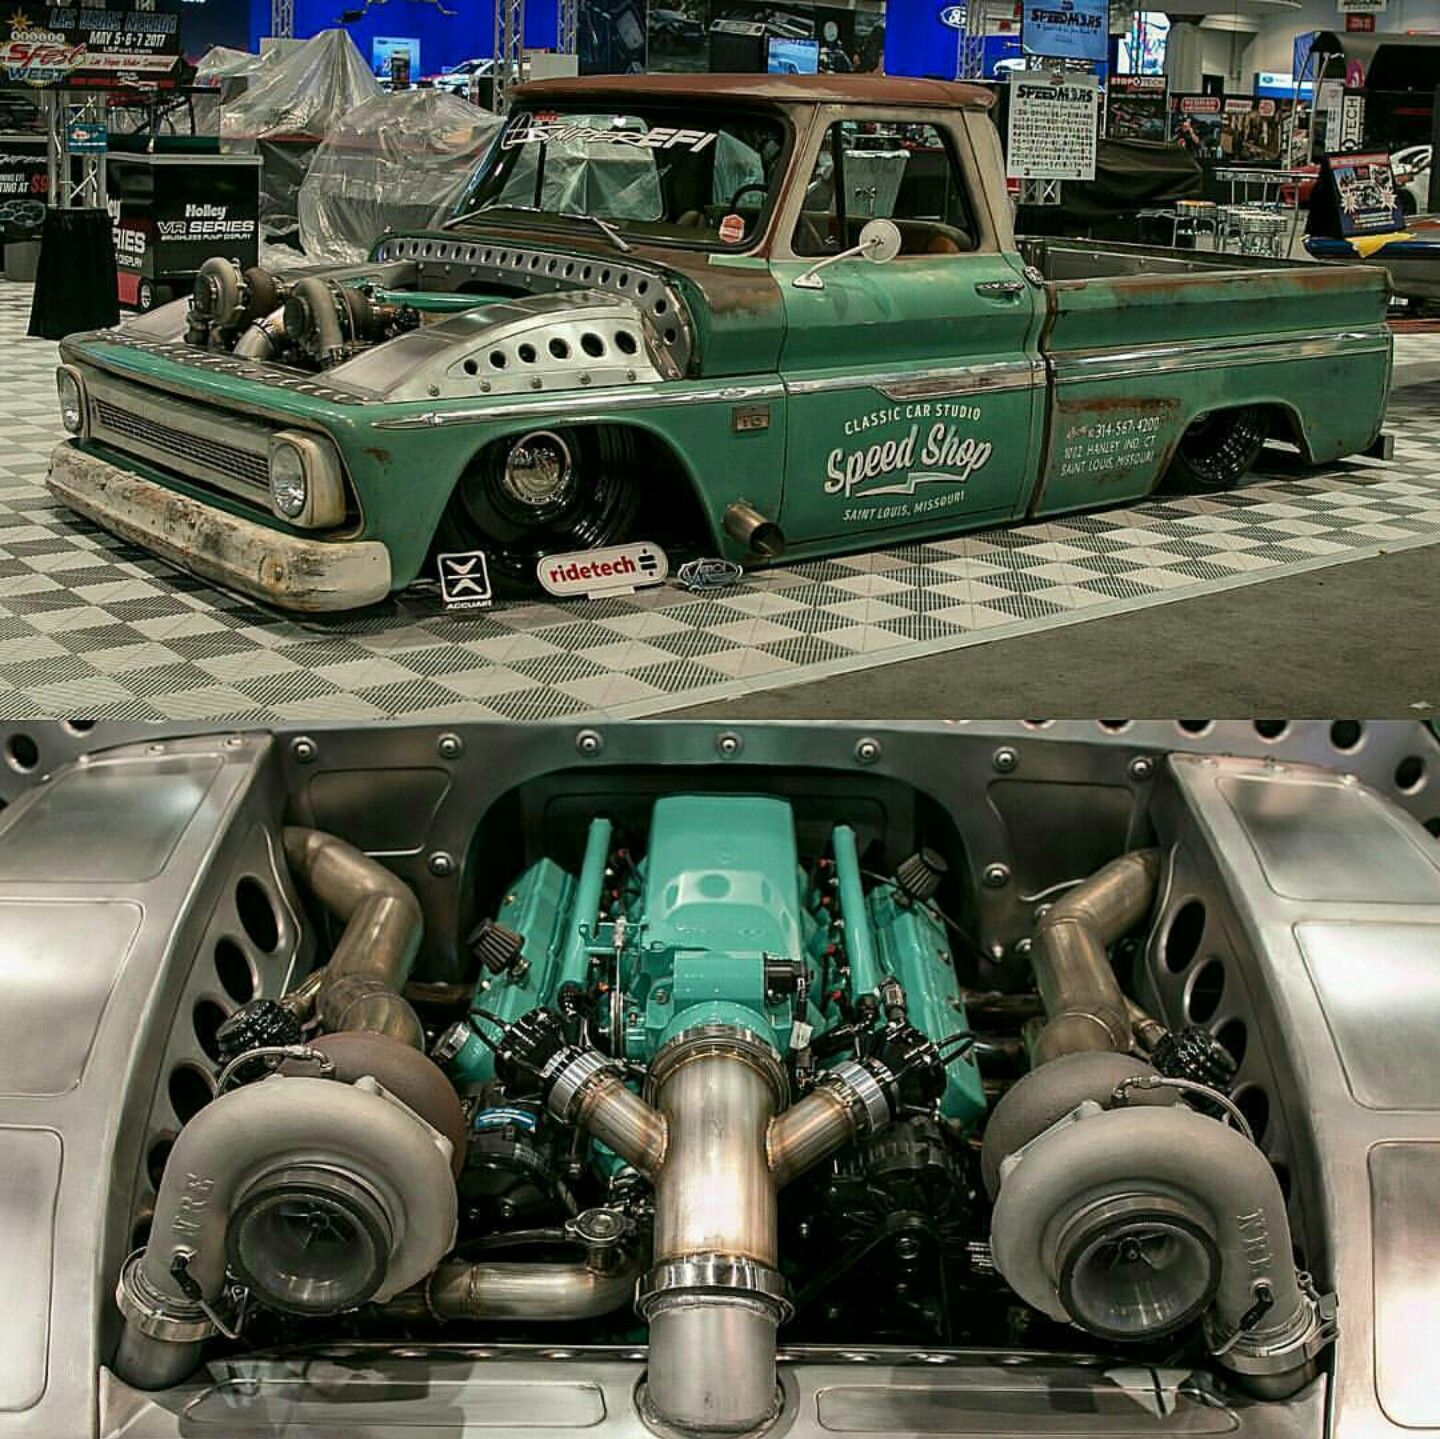 Sema2016 C10 Pinterest Camionetas Chevrolet Camioneta And Autos Modificadas Coches Exticos Camiones Chevy Motocicletas Carros Modificados Motores Tuneados